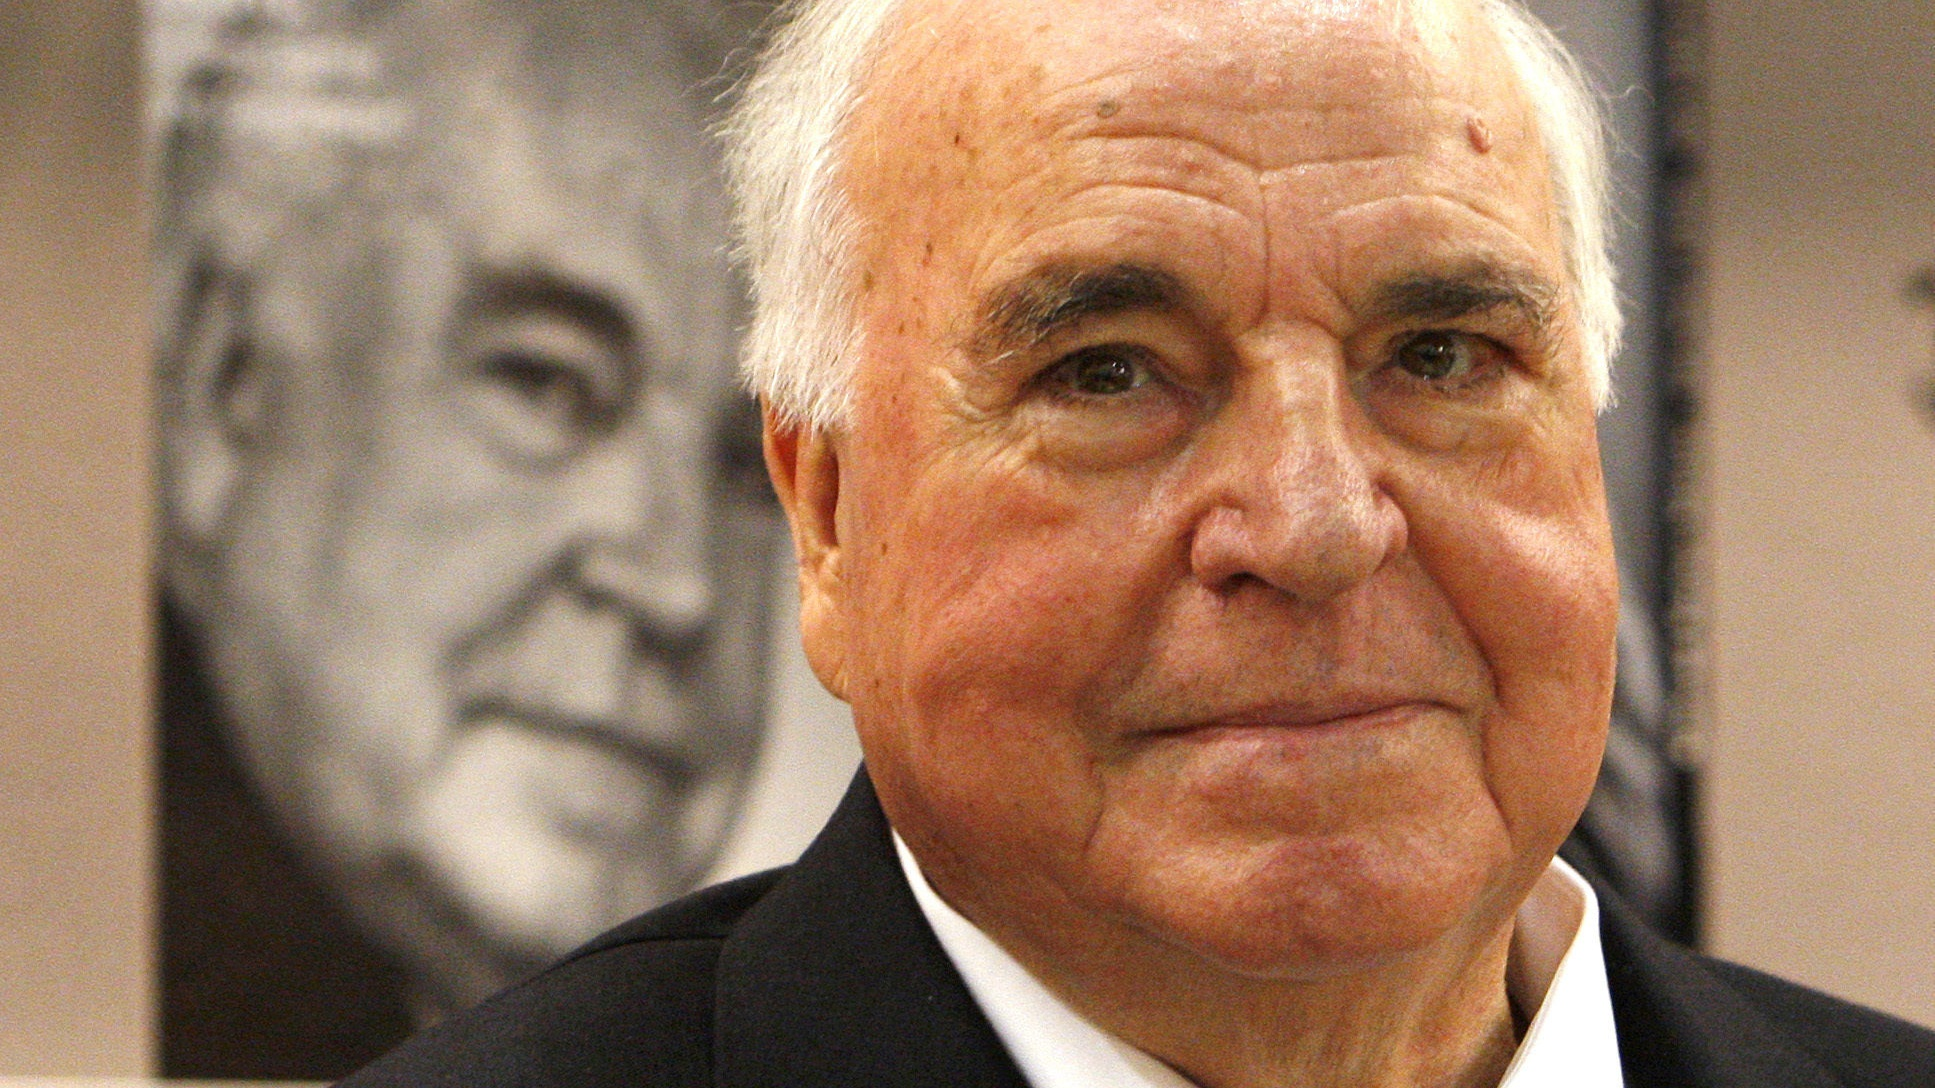 Helmut Kohl, father of German reunification, dies